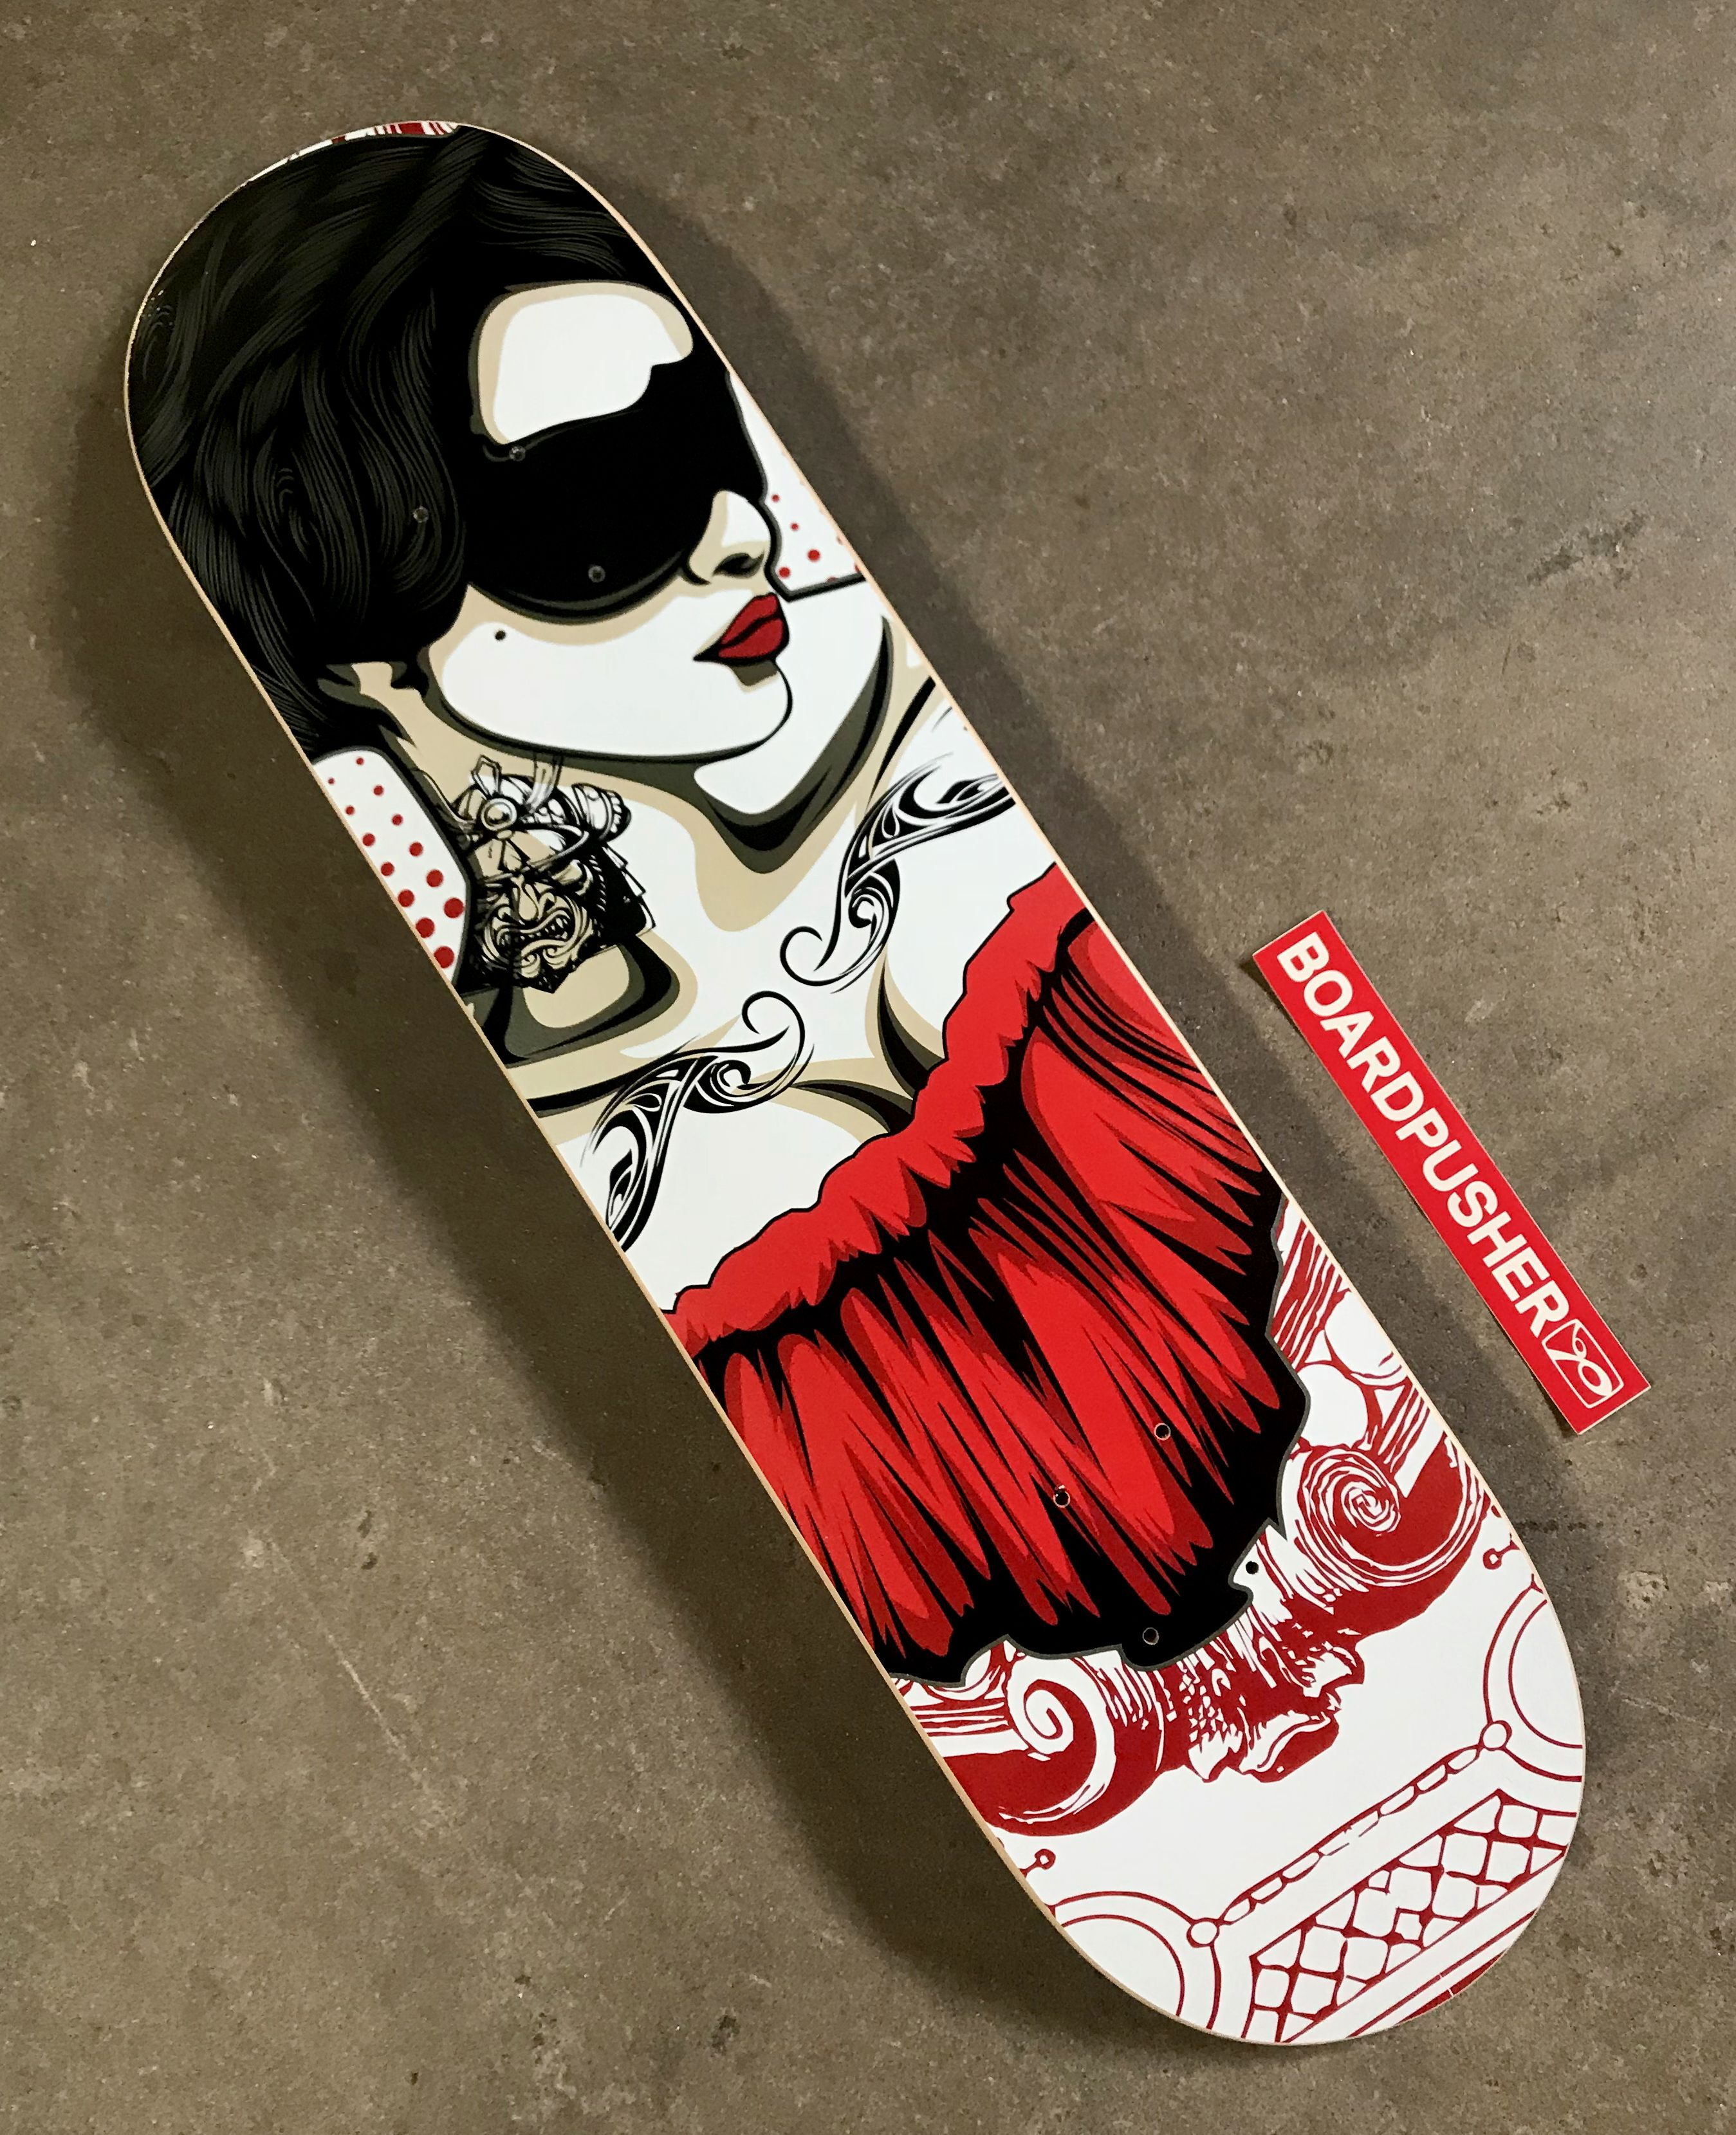 Click the image for more details about this custom skateboard